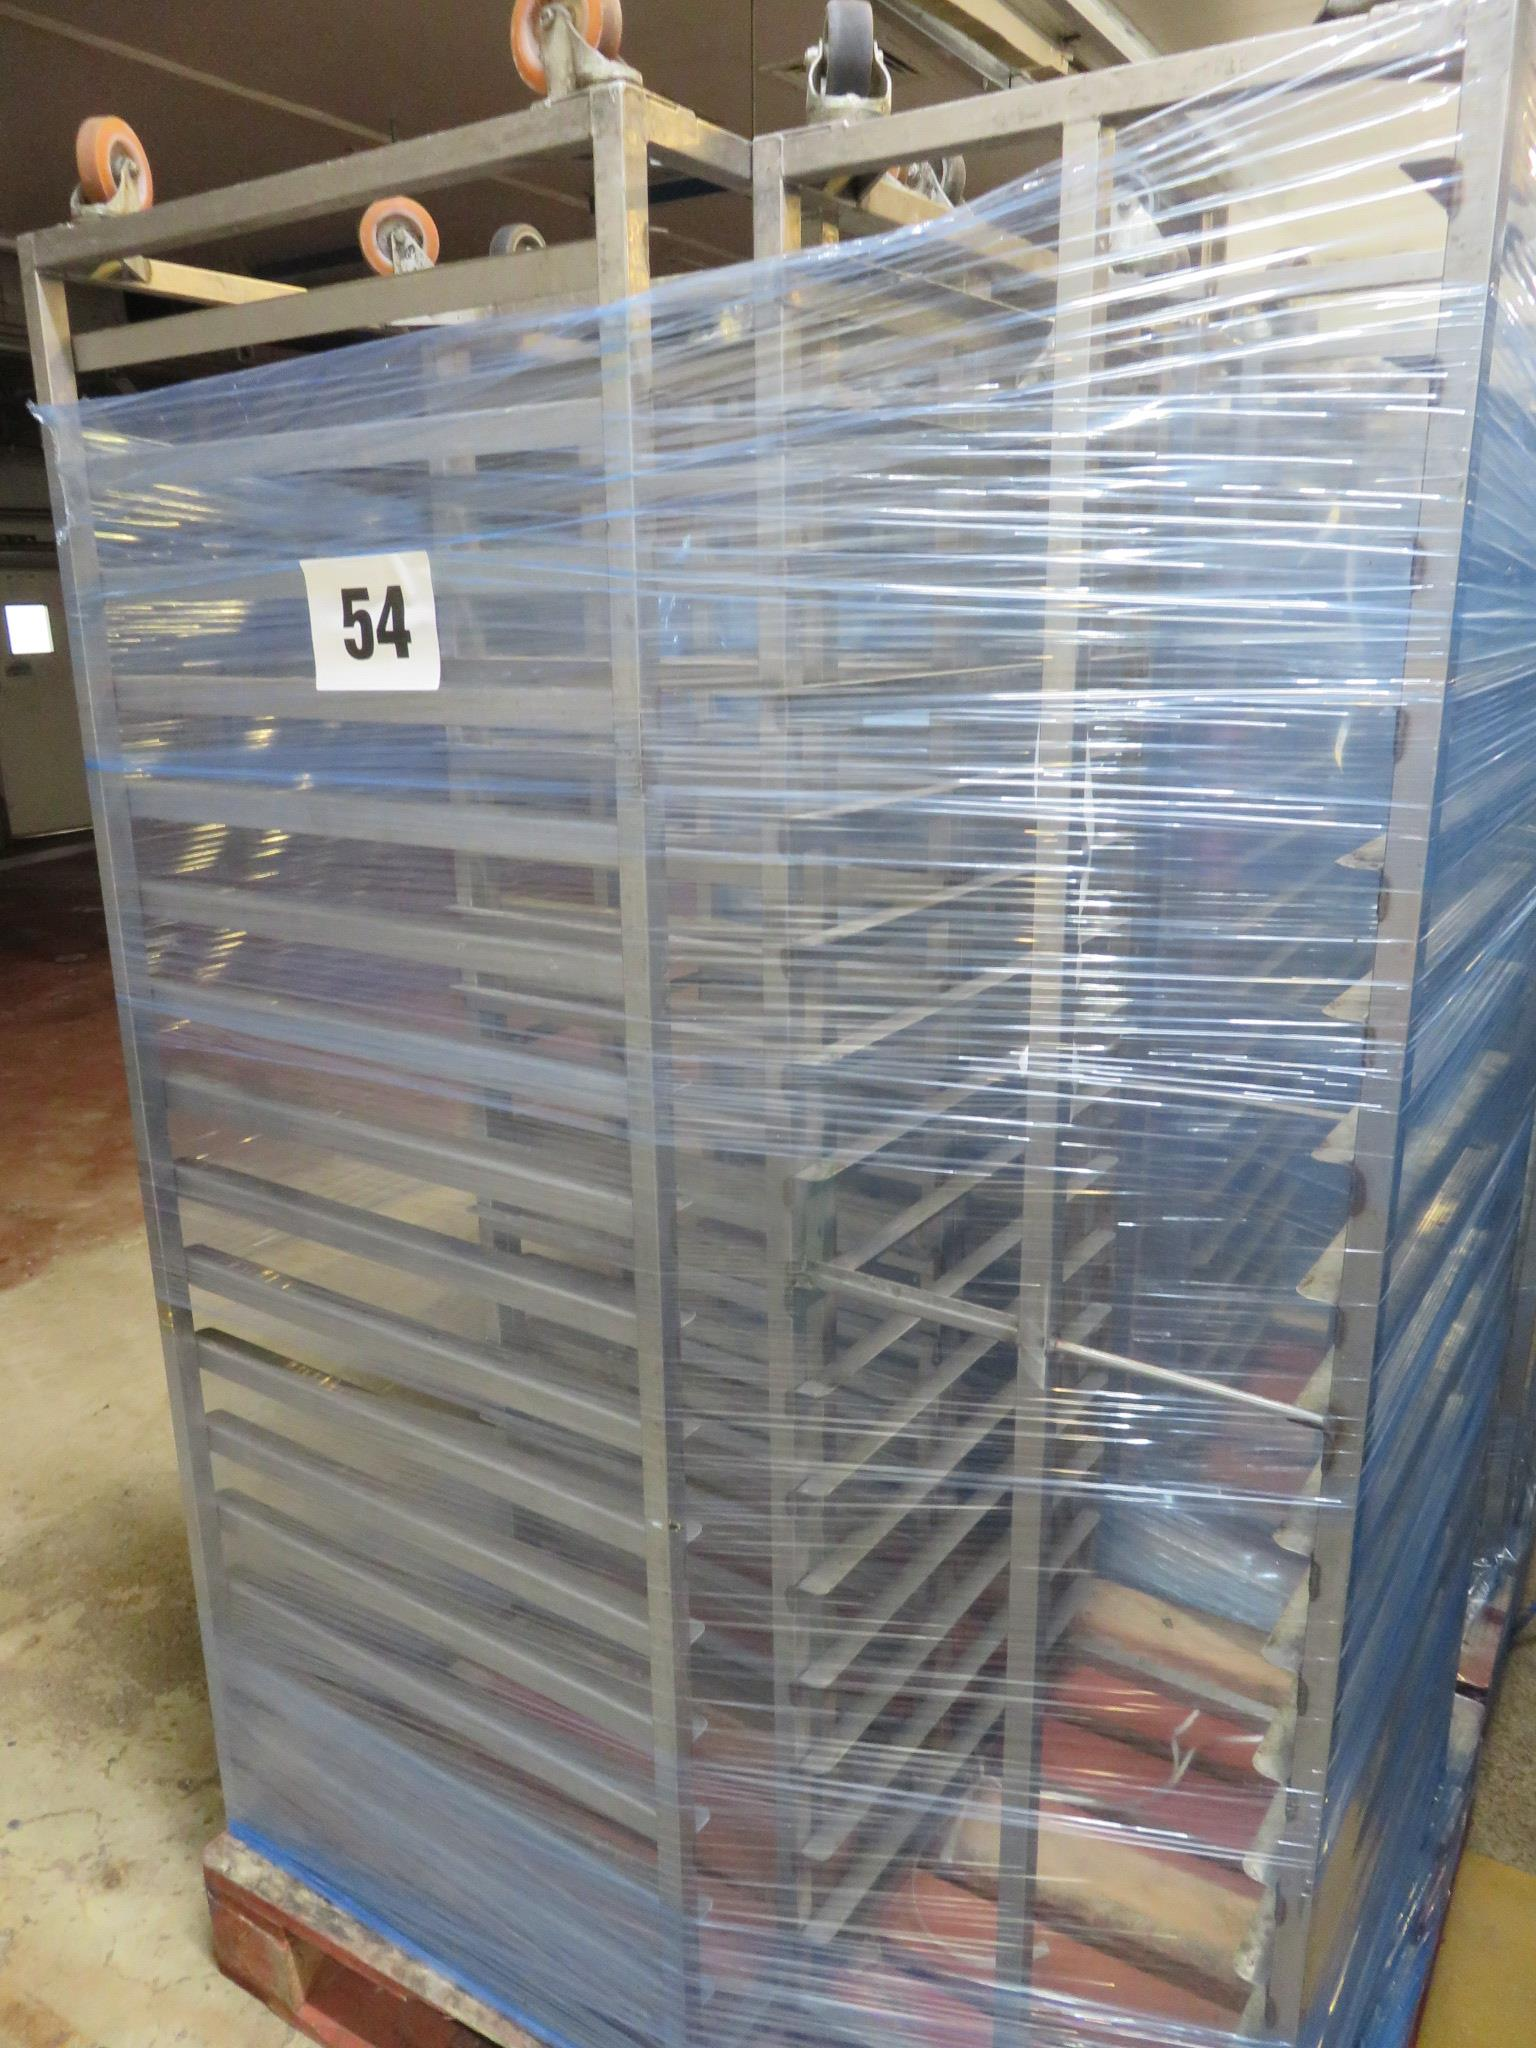 Lot 54 - 3 x S/s Racks capable of taking 16 trays. Approx. 430 x 650 x 1800mm high. Mobile LO £30